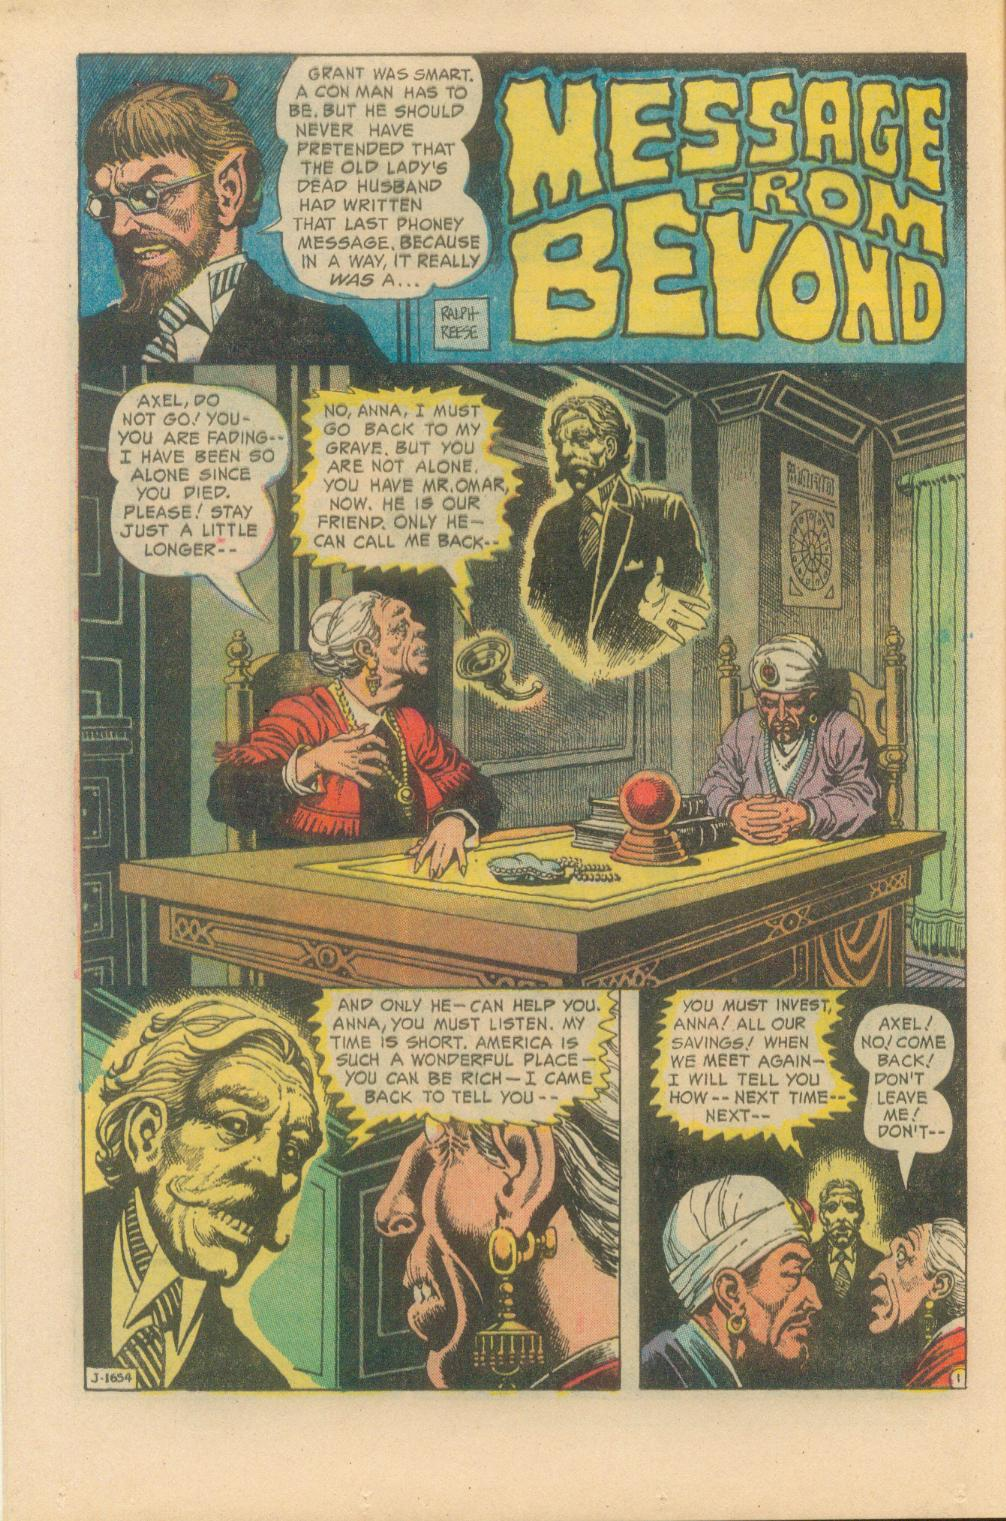 """House of Mystery (1951) #223, """"Message From Beyond"""" written by Jack Oleck with art by Ralph Reese."""